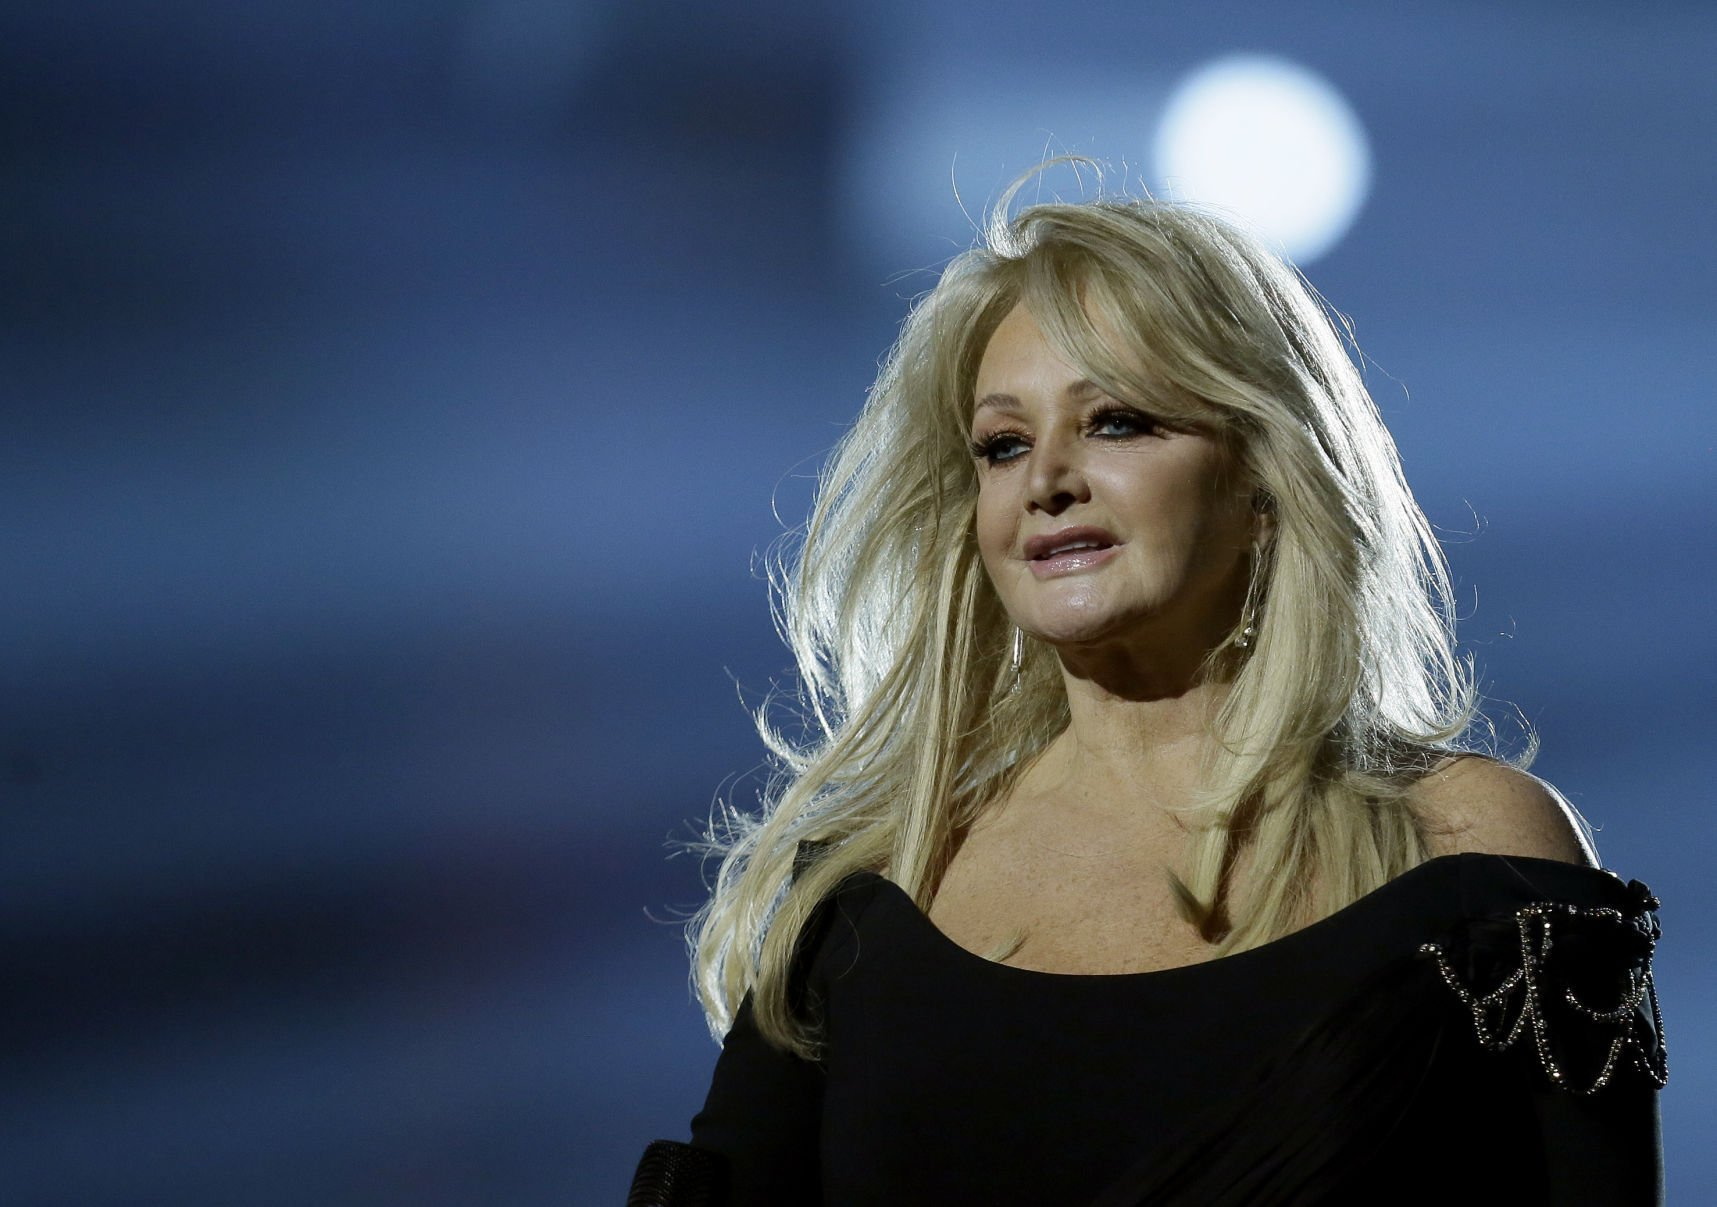 Bonnie Tyler's hit is soundtrack of historic solar eclipse